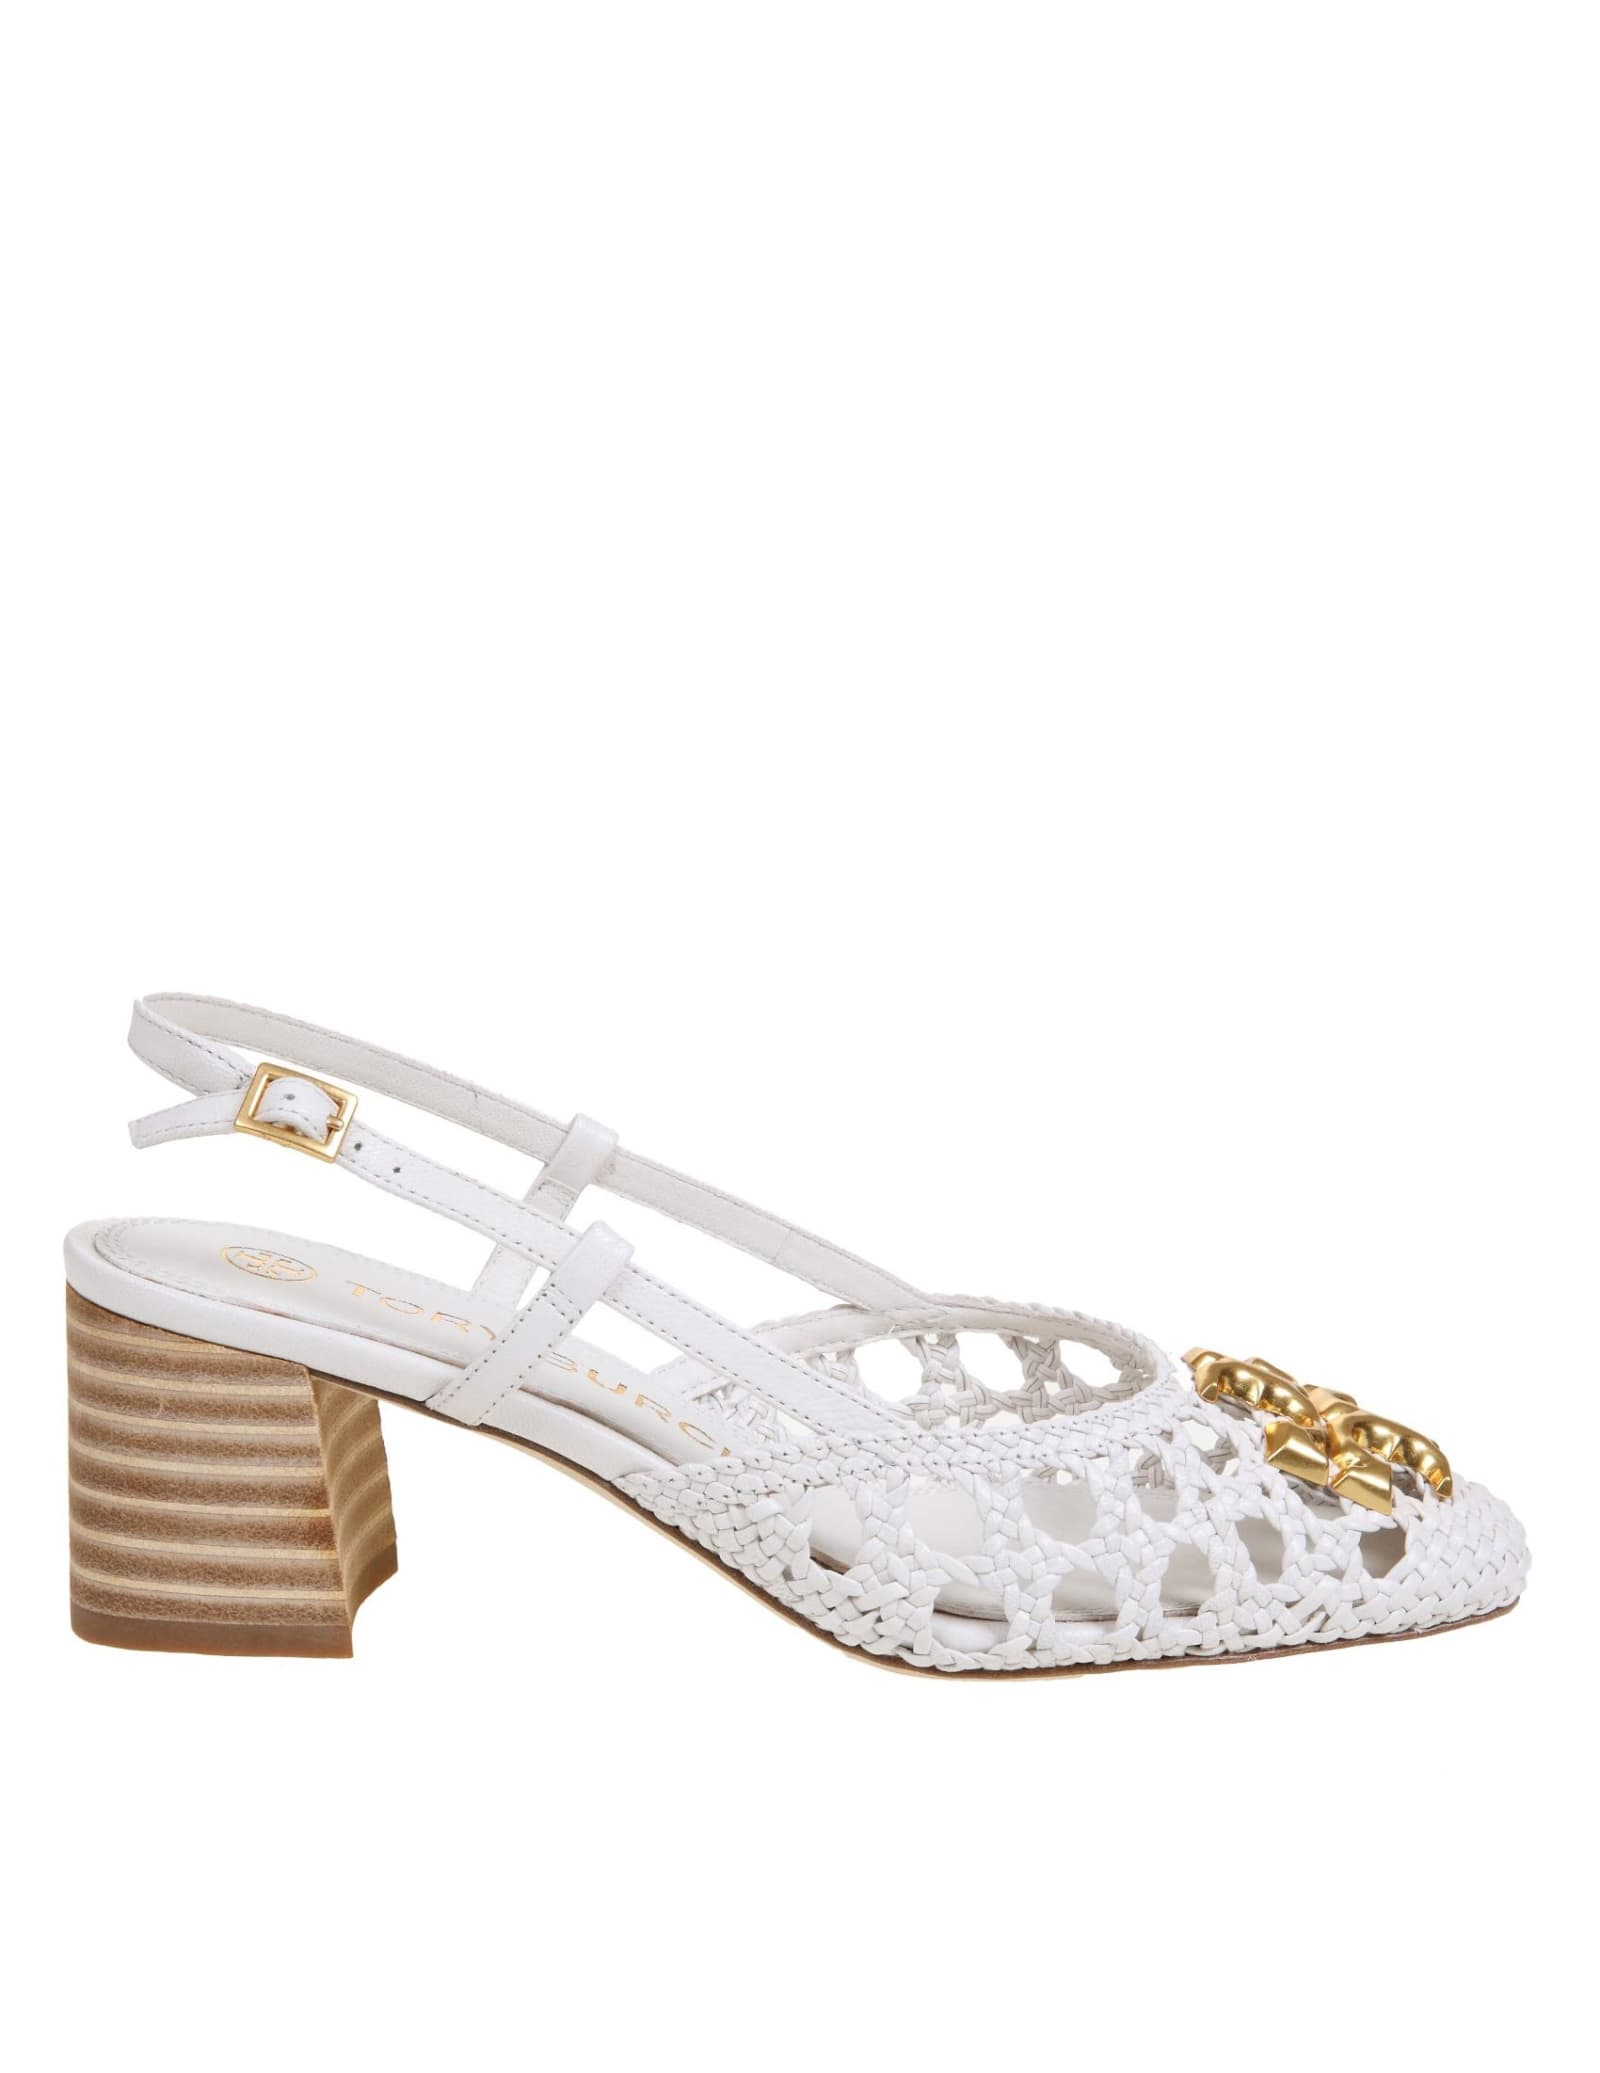 Buy Tory Burch Eleanor Decollete In Woven Leather online, shop Tory Burch shoes with free shipping